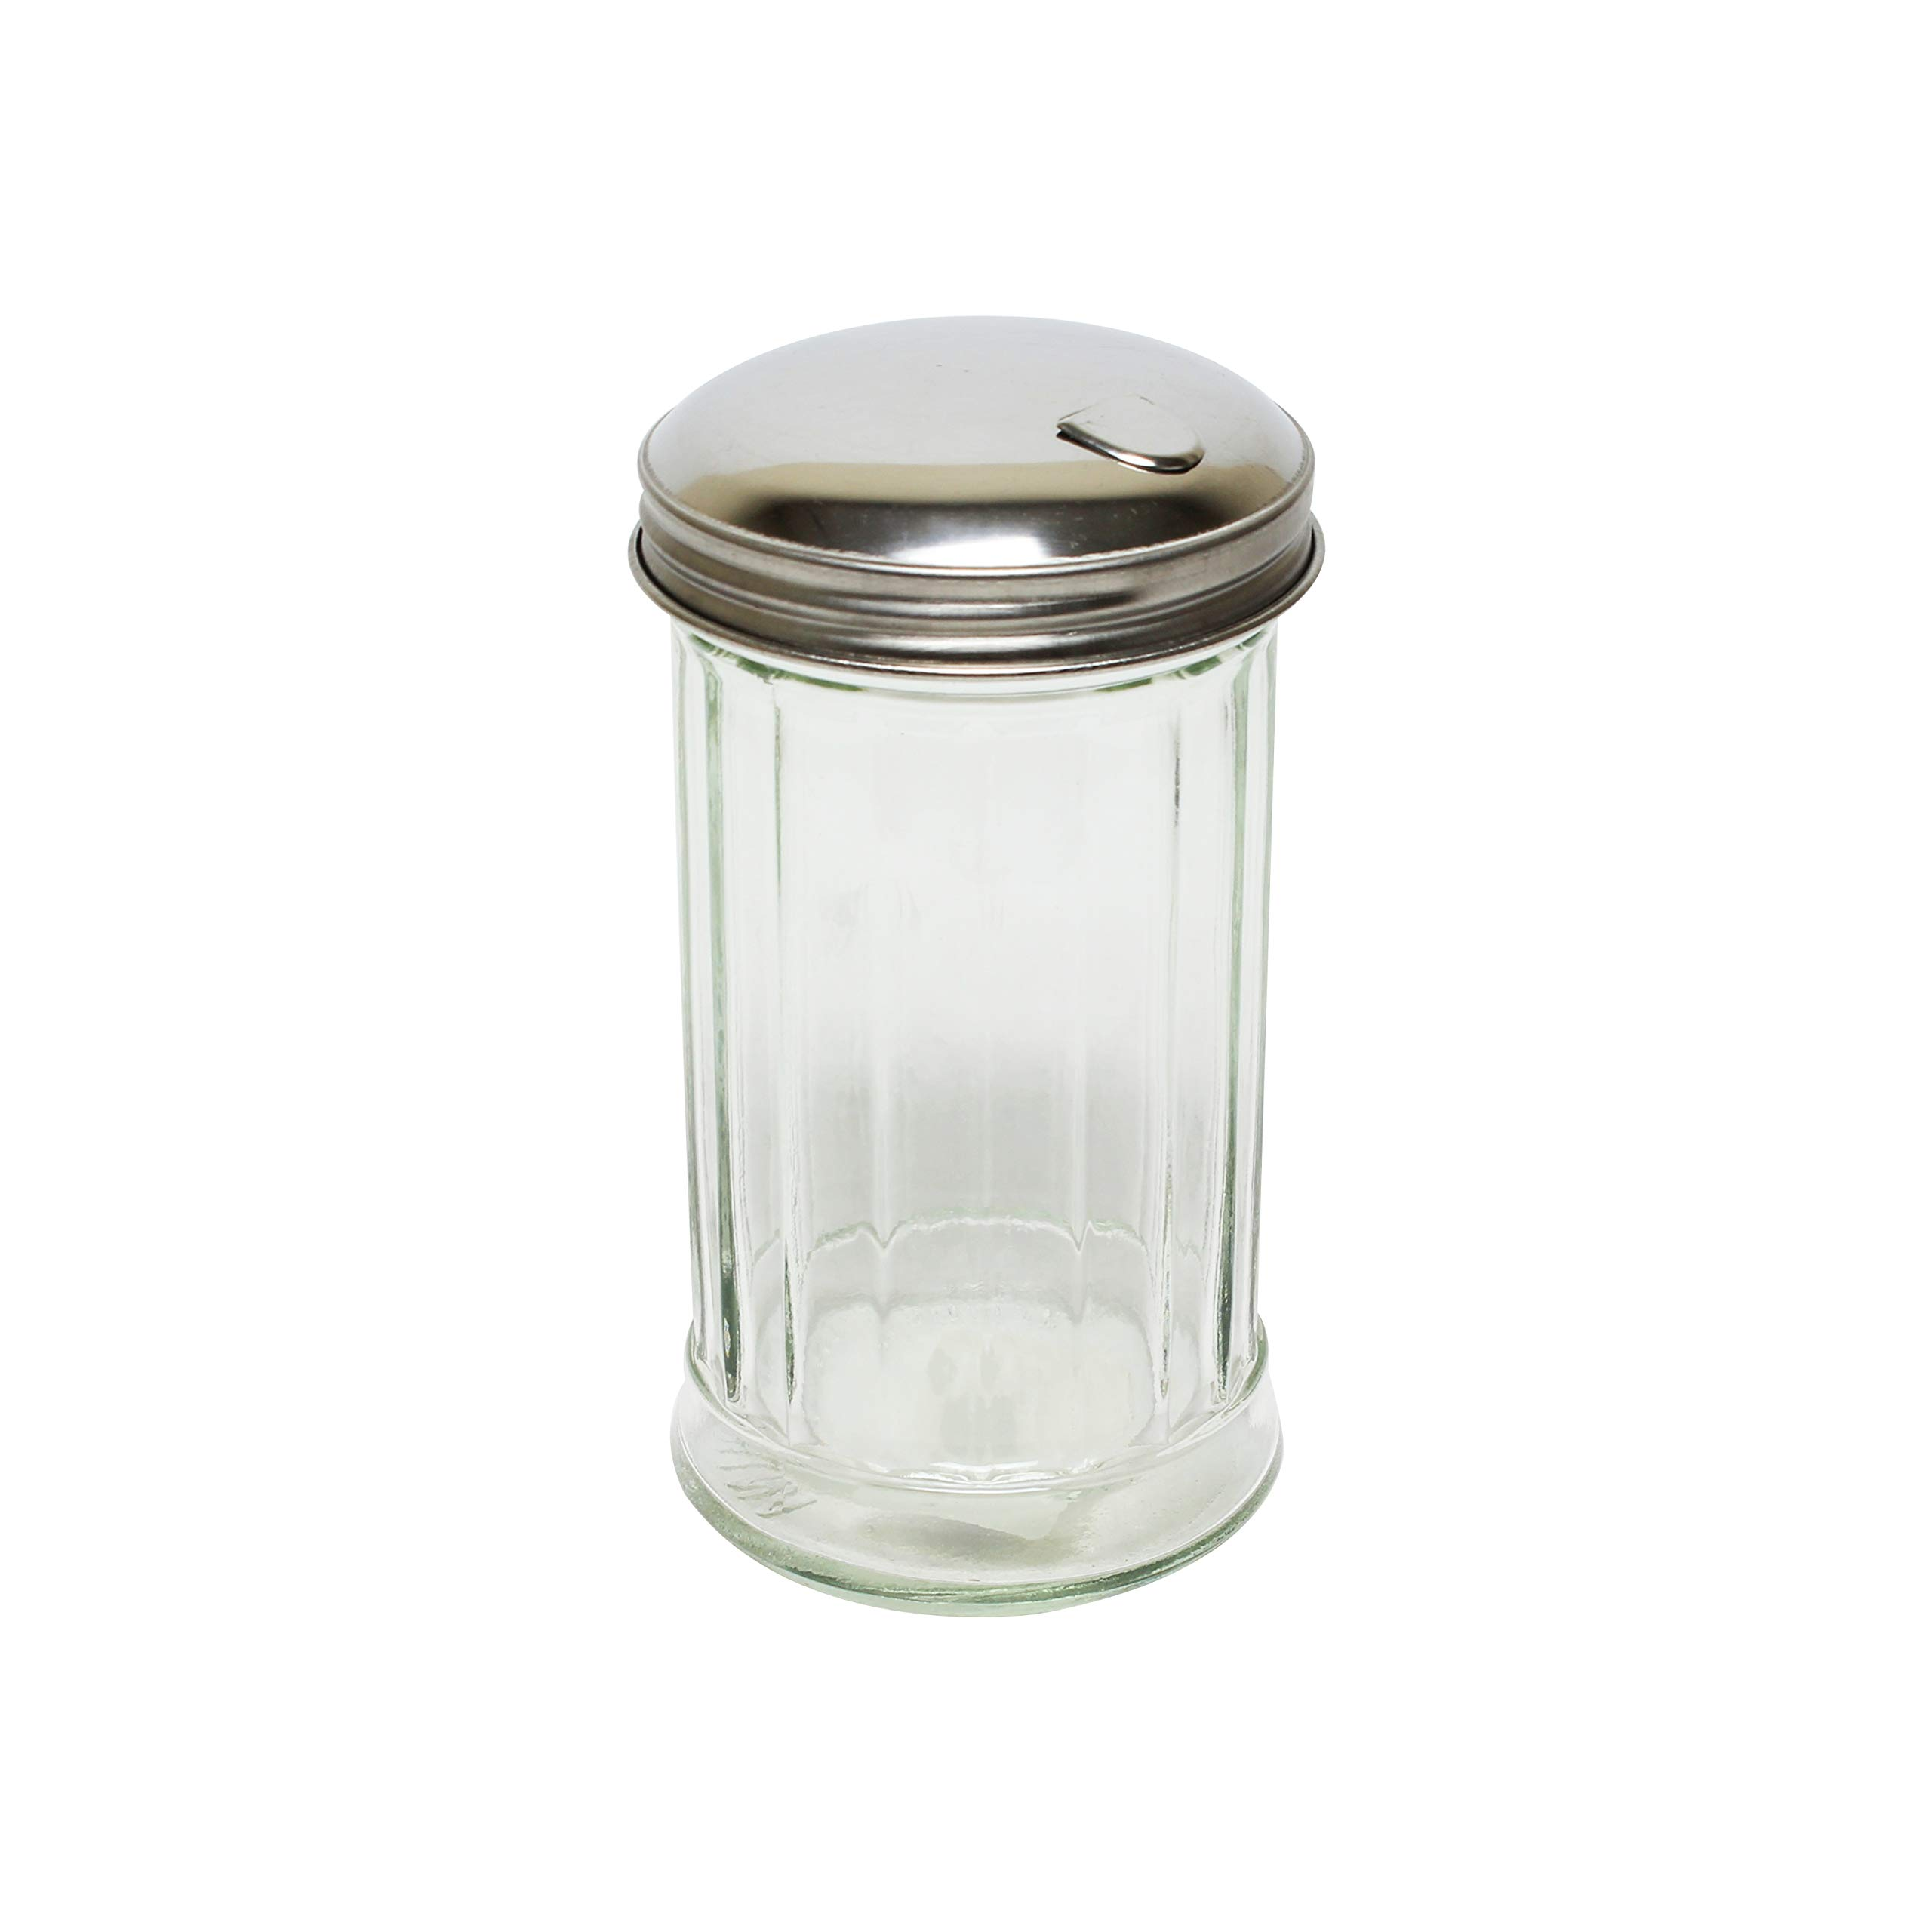 Thunder Group 12 oz sugar or cheese shaker, glass with stainless steel flip cap, comes in 2/ Pack by Thunder Group